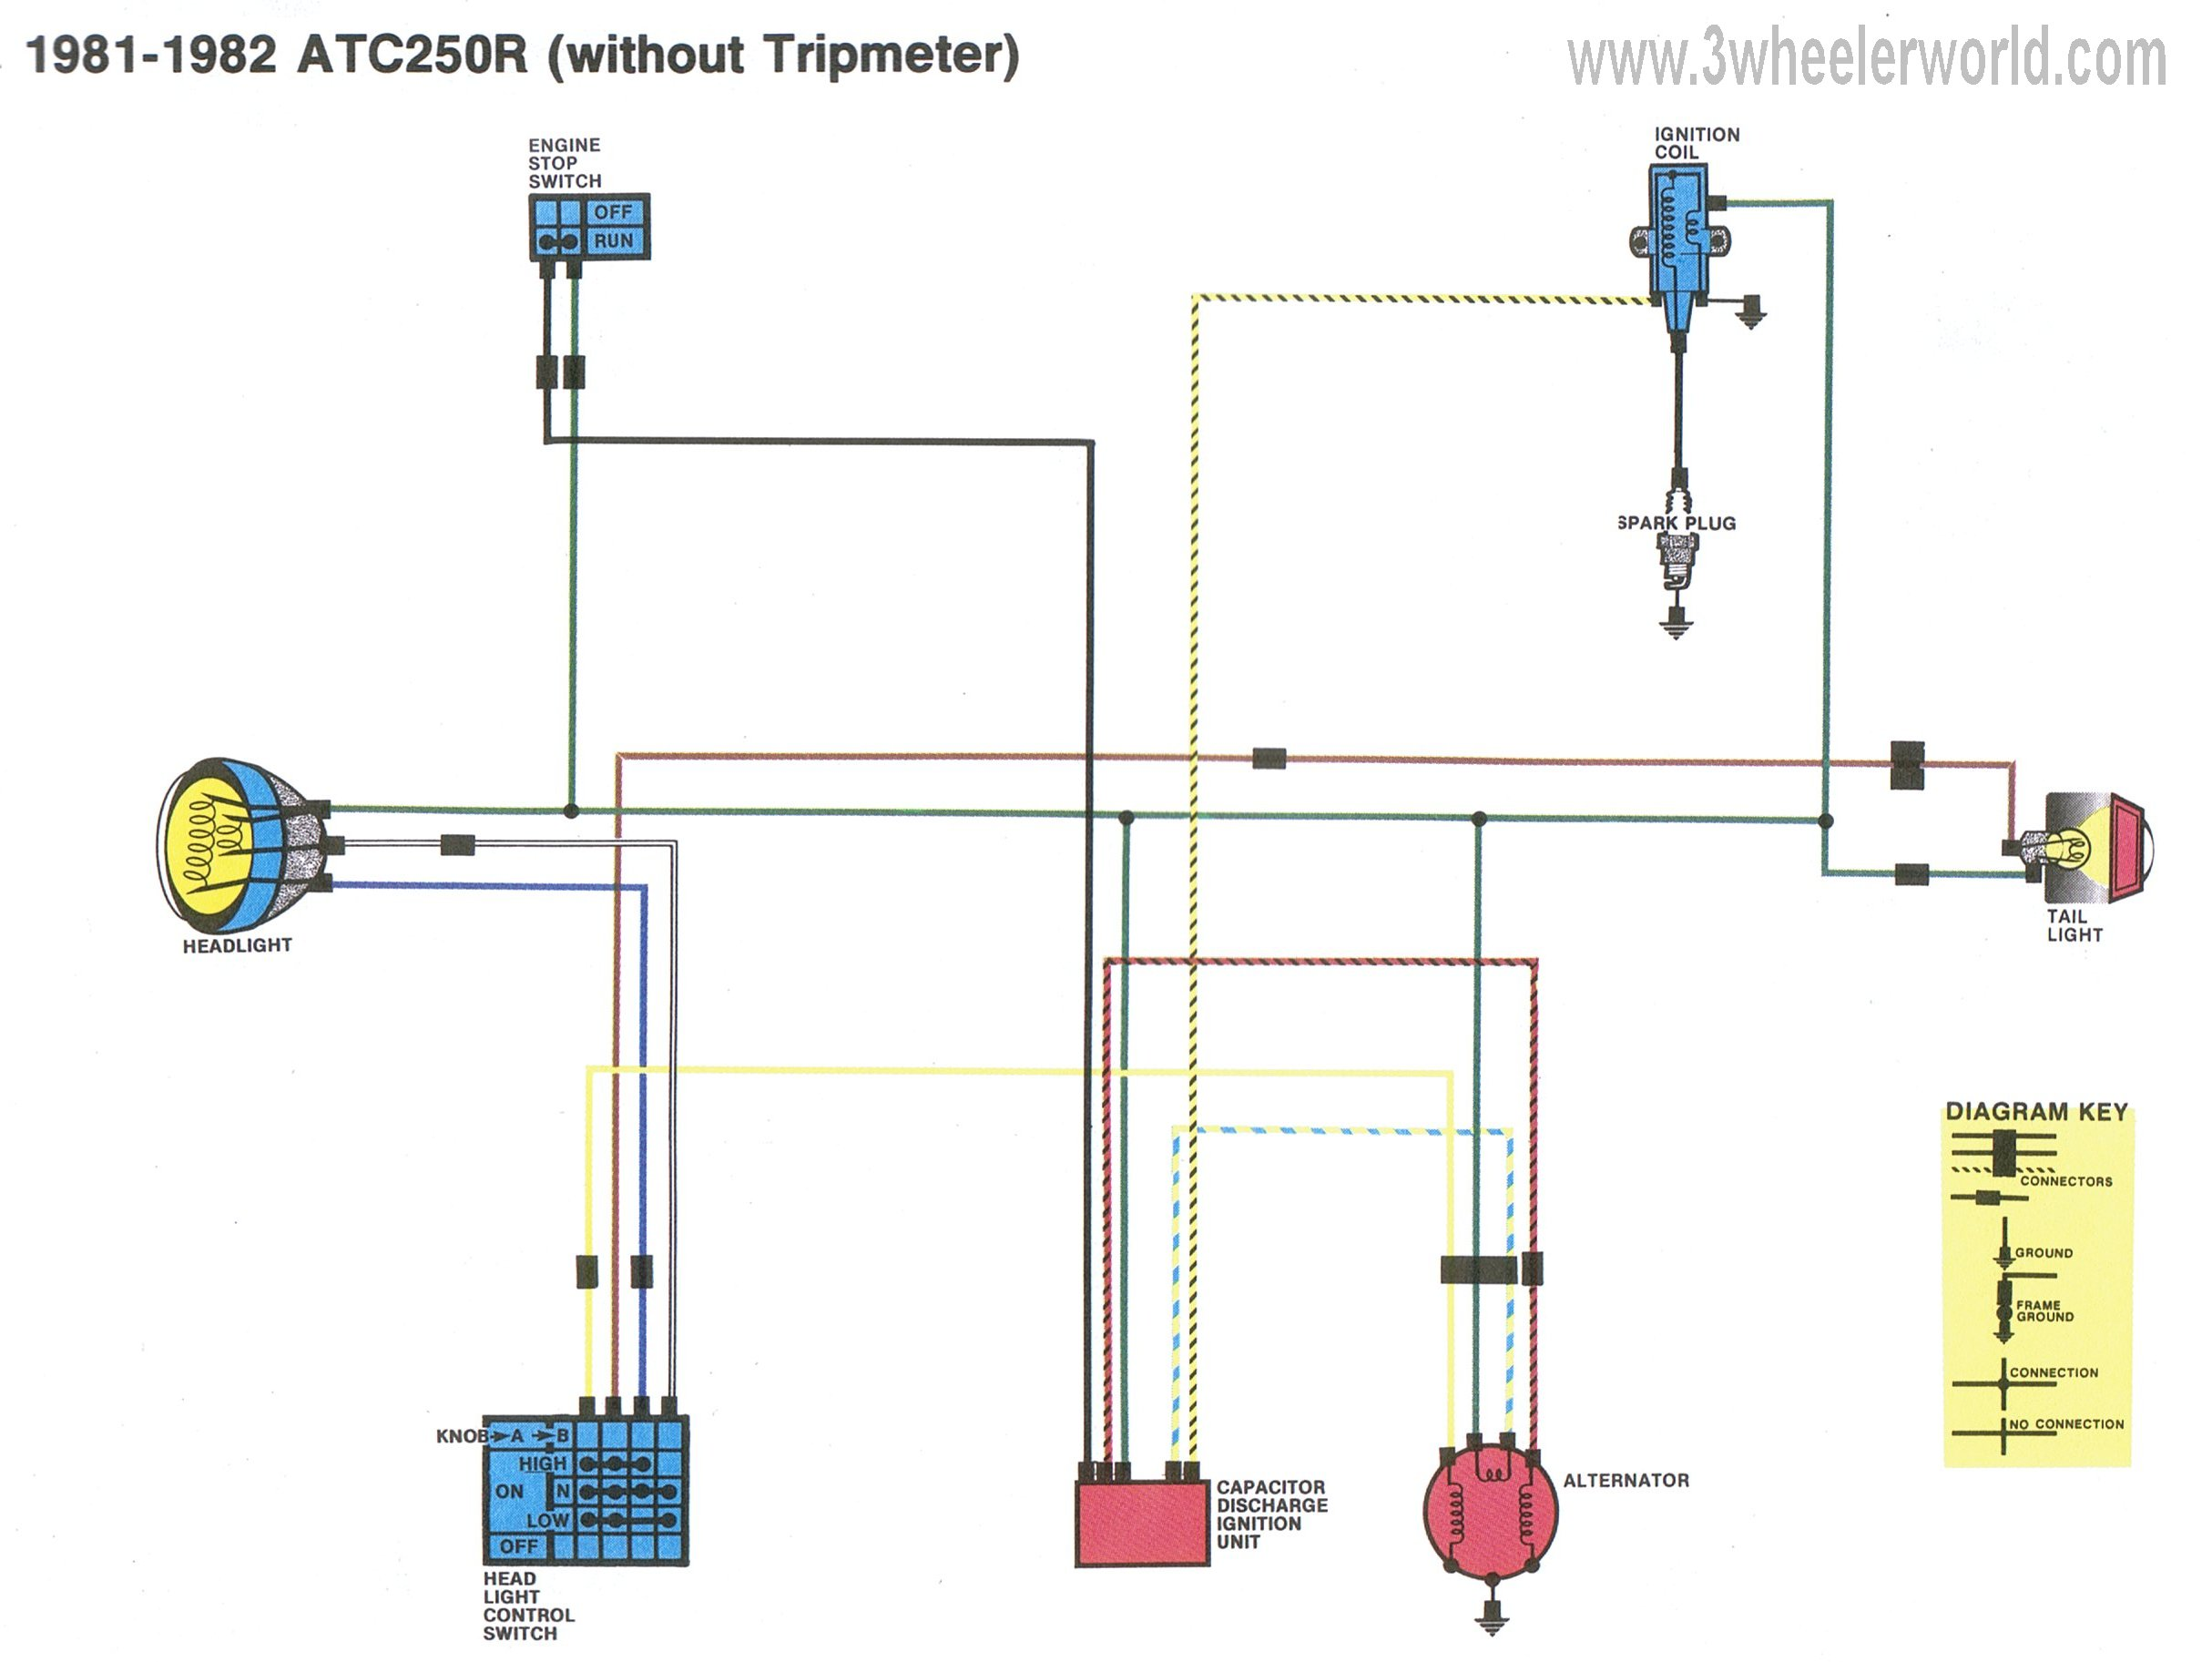 Pin Trailer Diagram 9 Get Free Image About Wiring Diagram